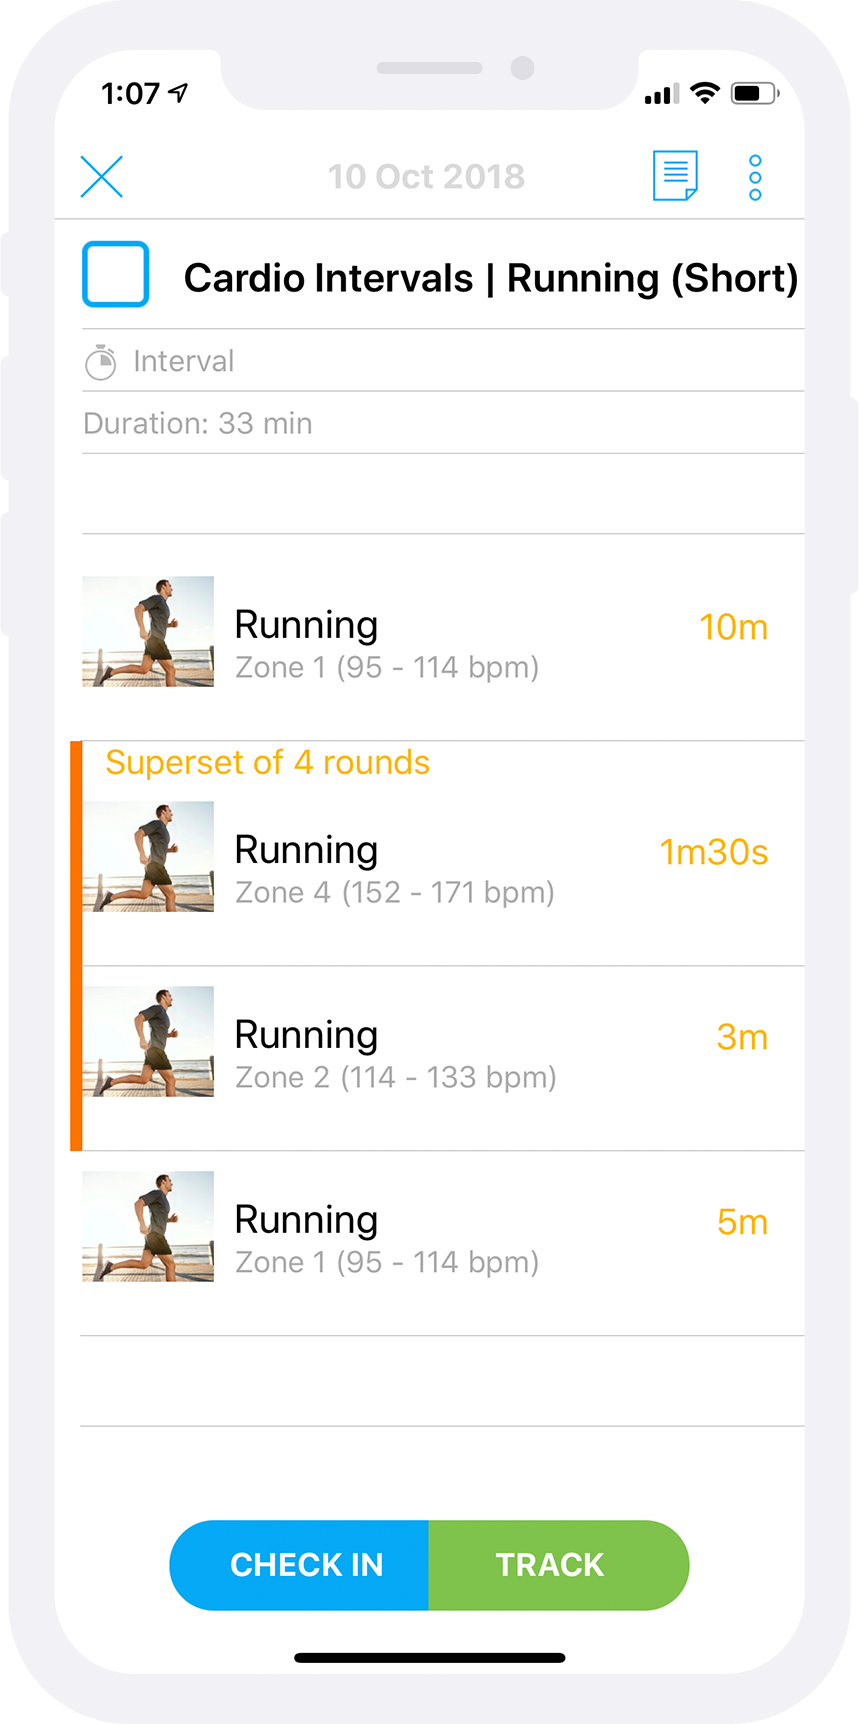 Cardio Interval Workout Being Tracked in Trainerize